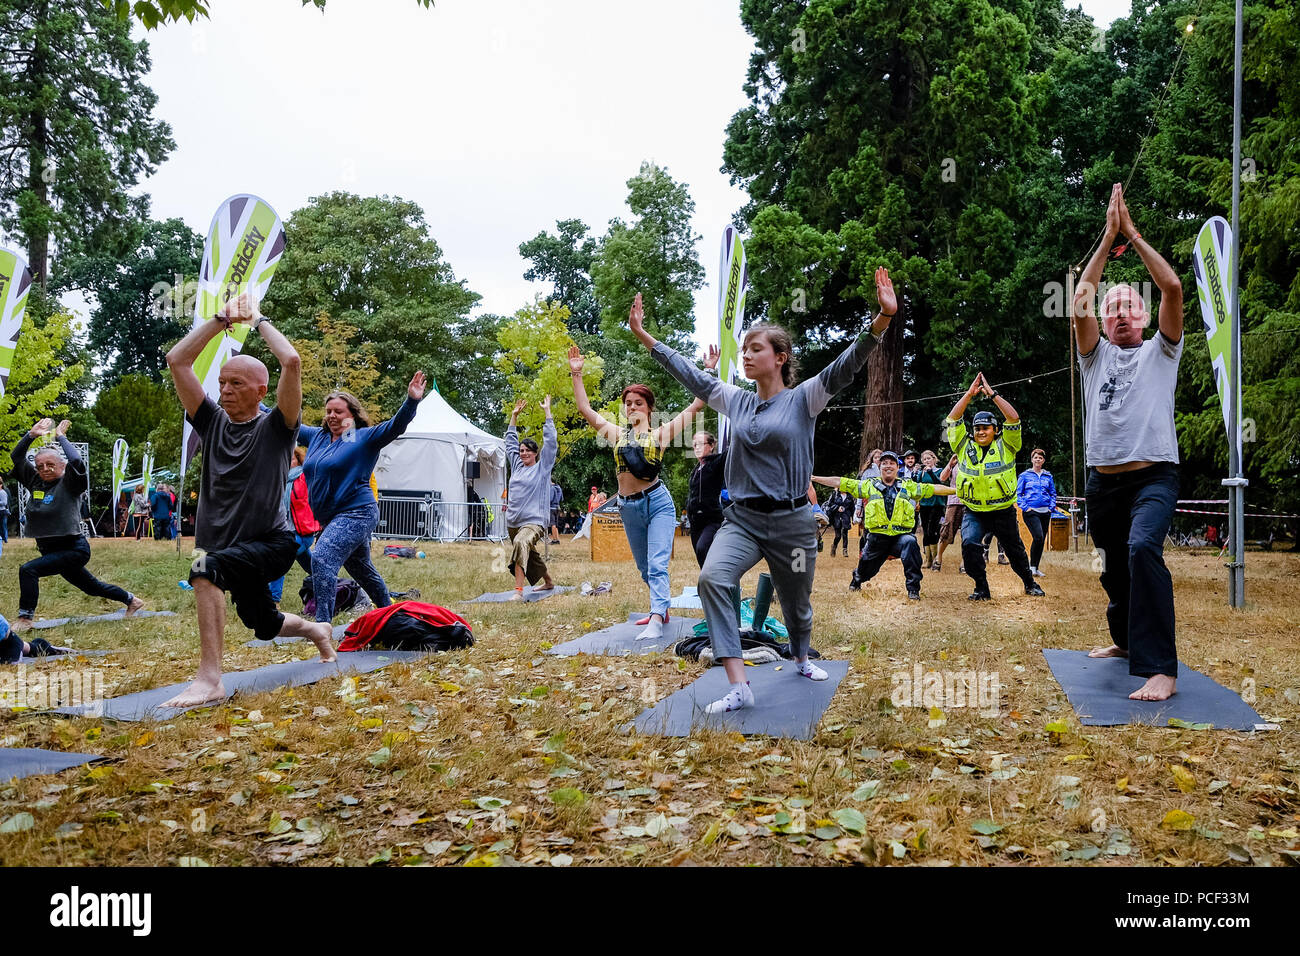 Police join a Yoga Class at WOMAD on Sunday 29 July 2018 held at Charlton Park, Wiltshire . Pictured: 2 Police officers of the Wiltshire Police Force joined in a free Yoga Class taking place in the World of Wellbeing . - Stock Image